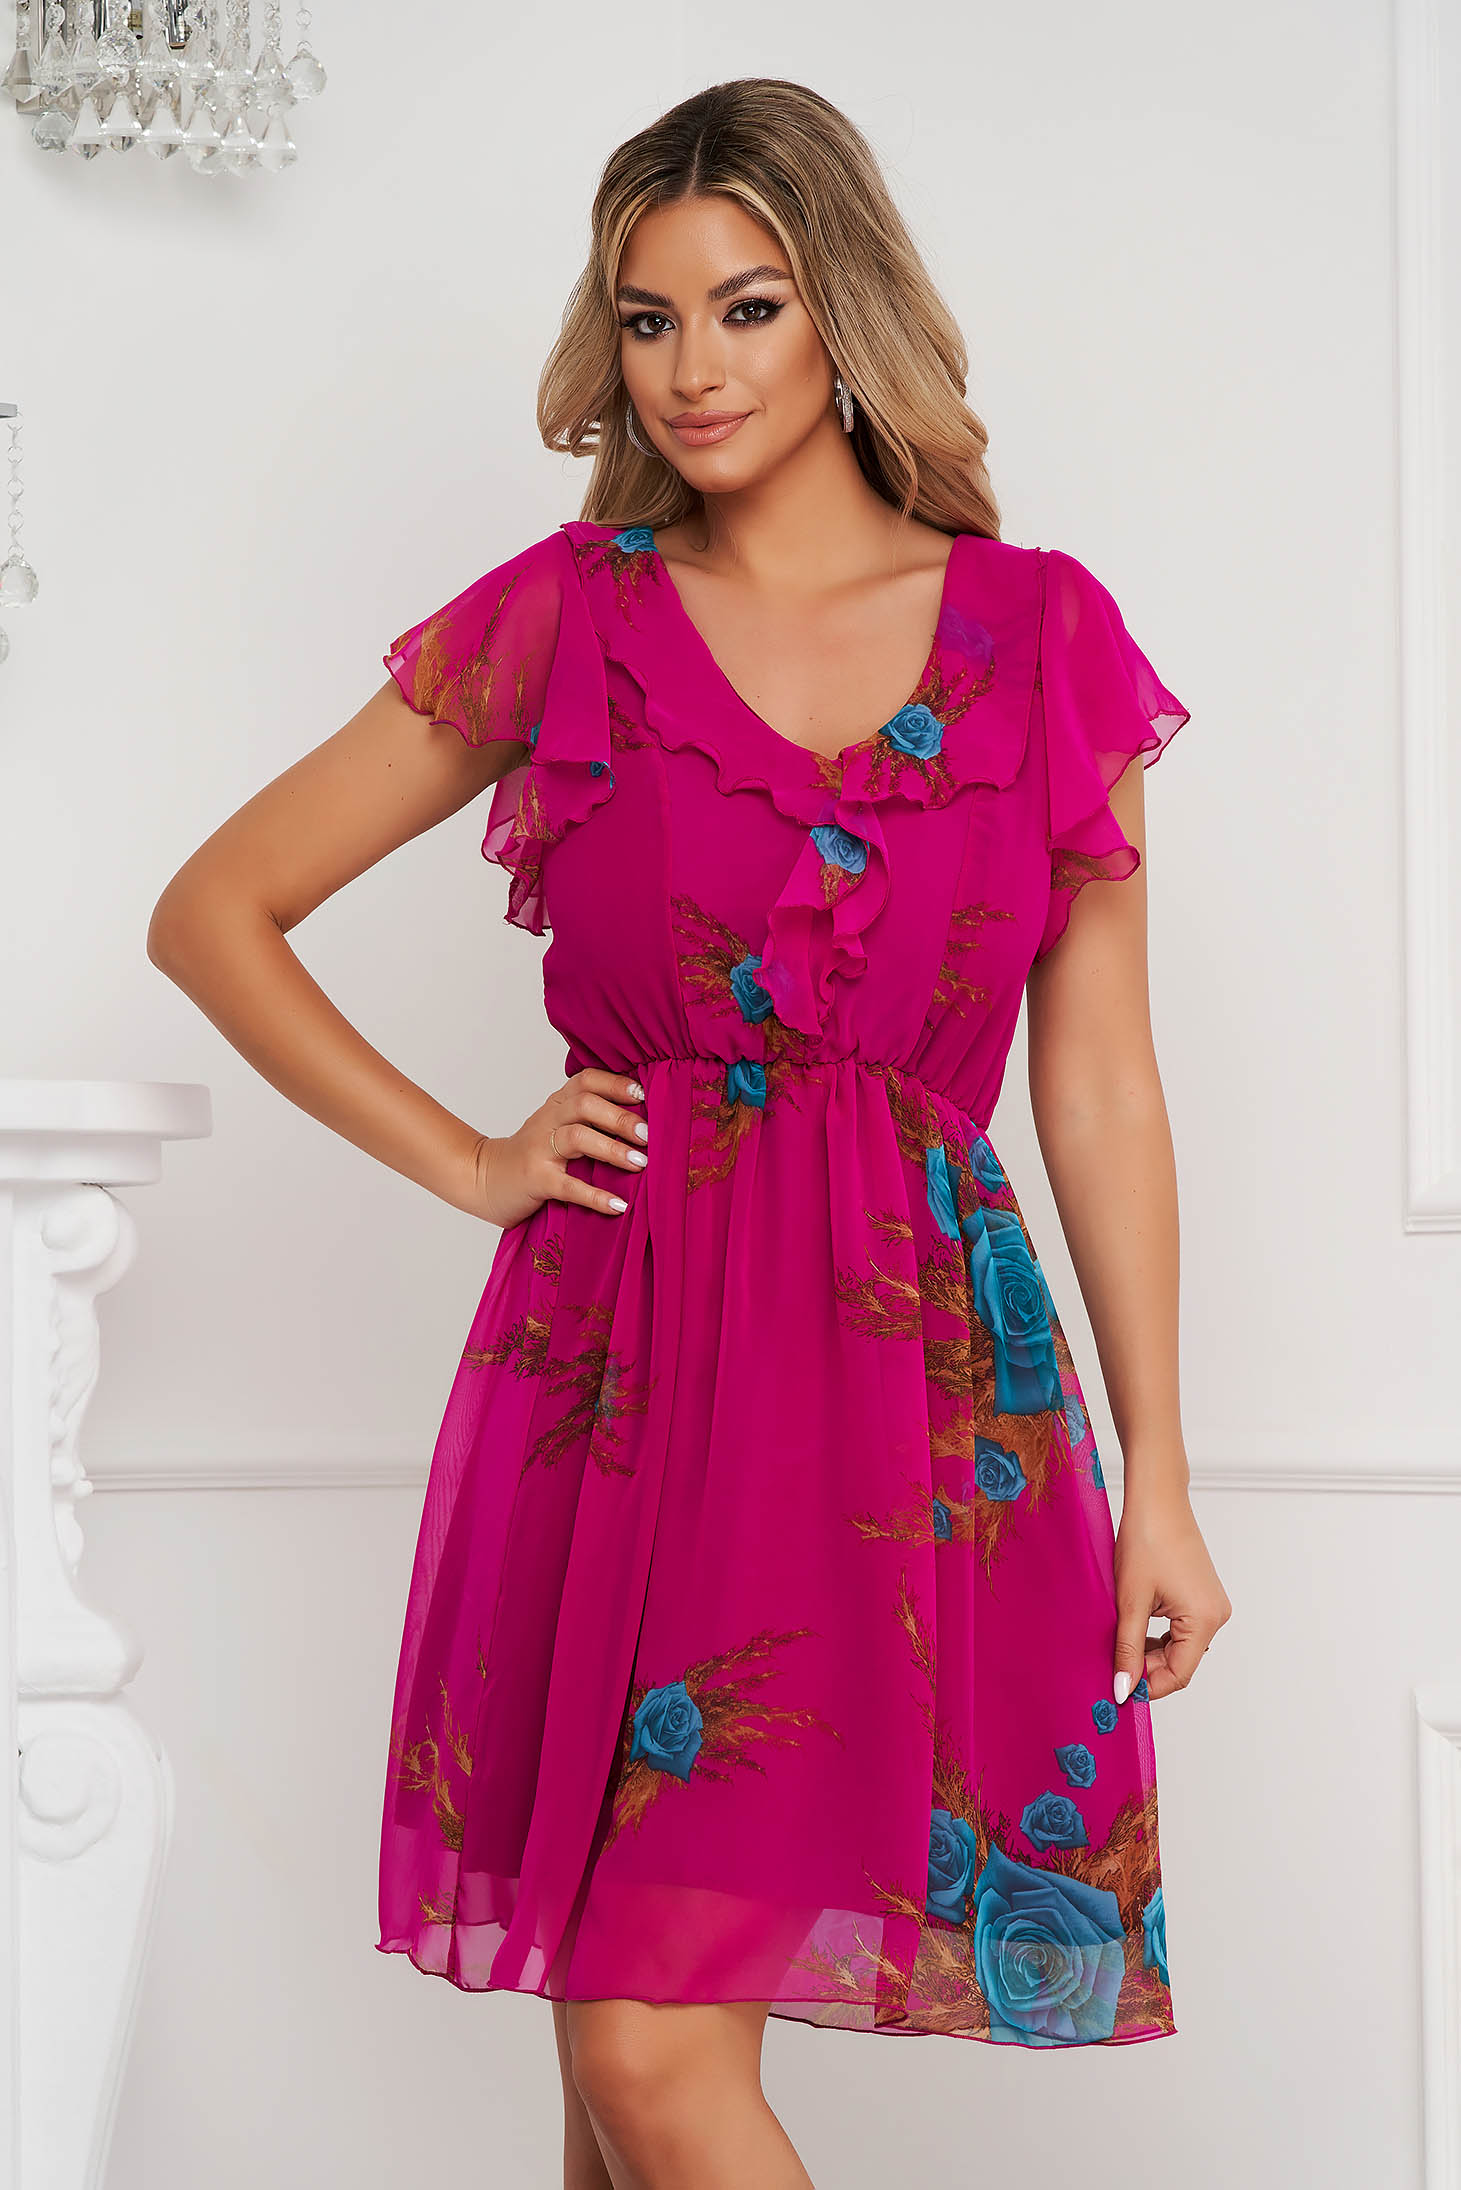 Dress cloche with elastic waist short cut from veil fabric frilly trim around cleavage line with ruffled sleeves